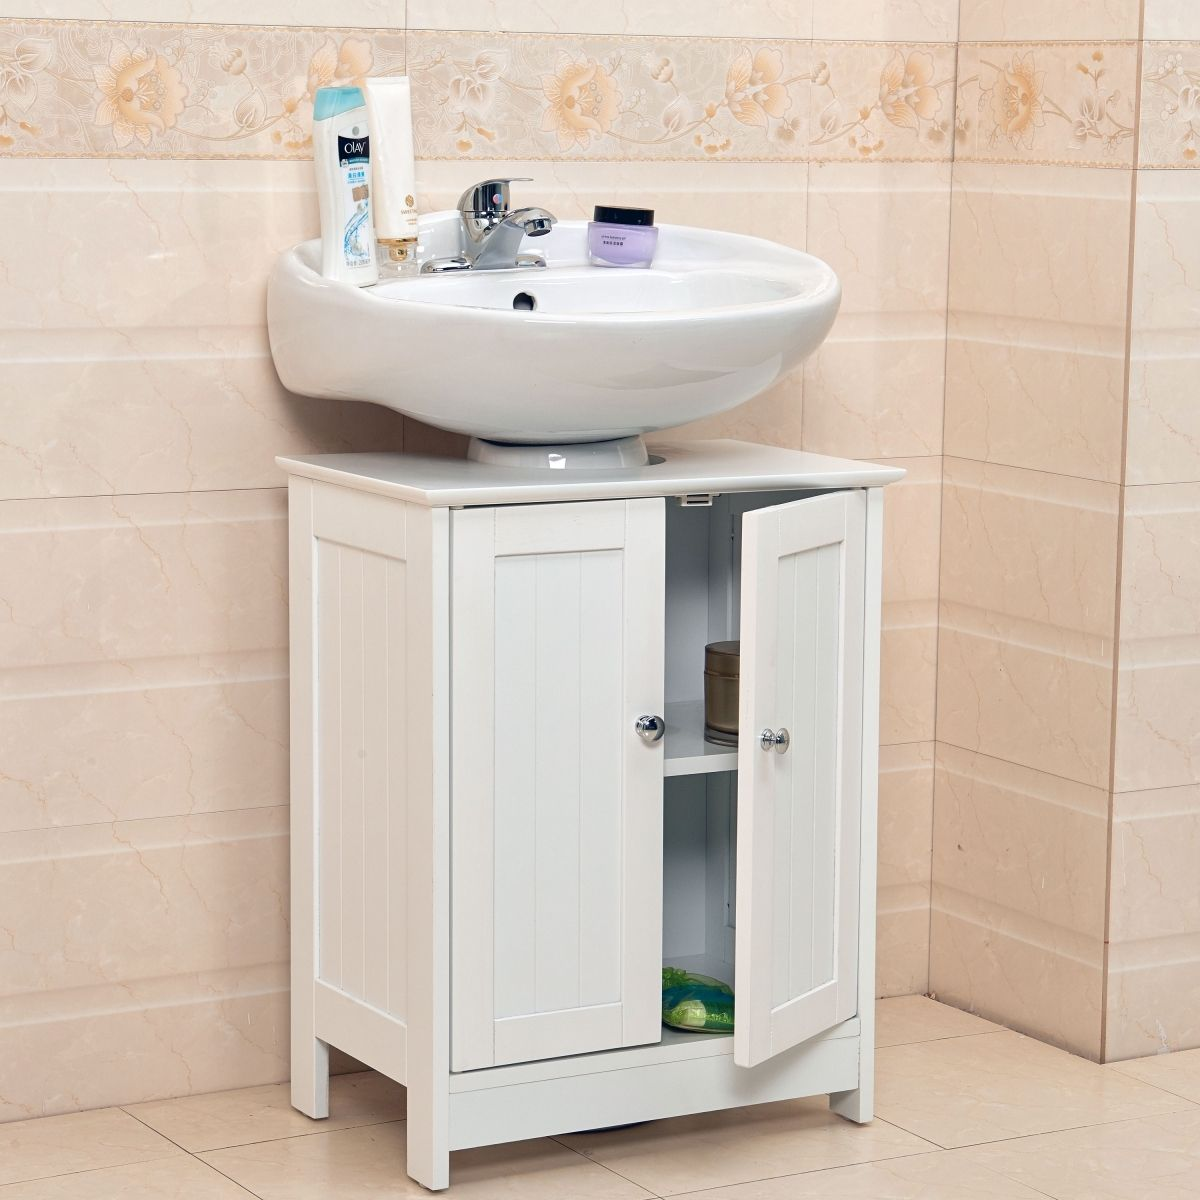 Undersink Bathroom Cabinet Cupboard Vanity Unit Under Sink Basin Throughout Bathroom Cabin Pedestal Sink Storage Bathroom Cupboard Storage Small Bathroom Sinks